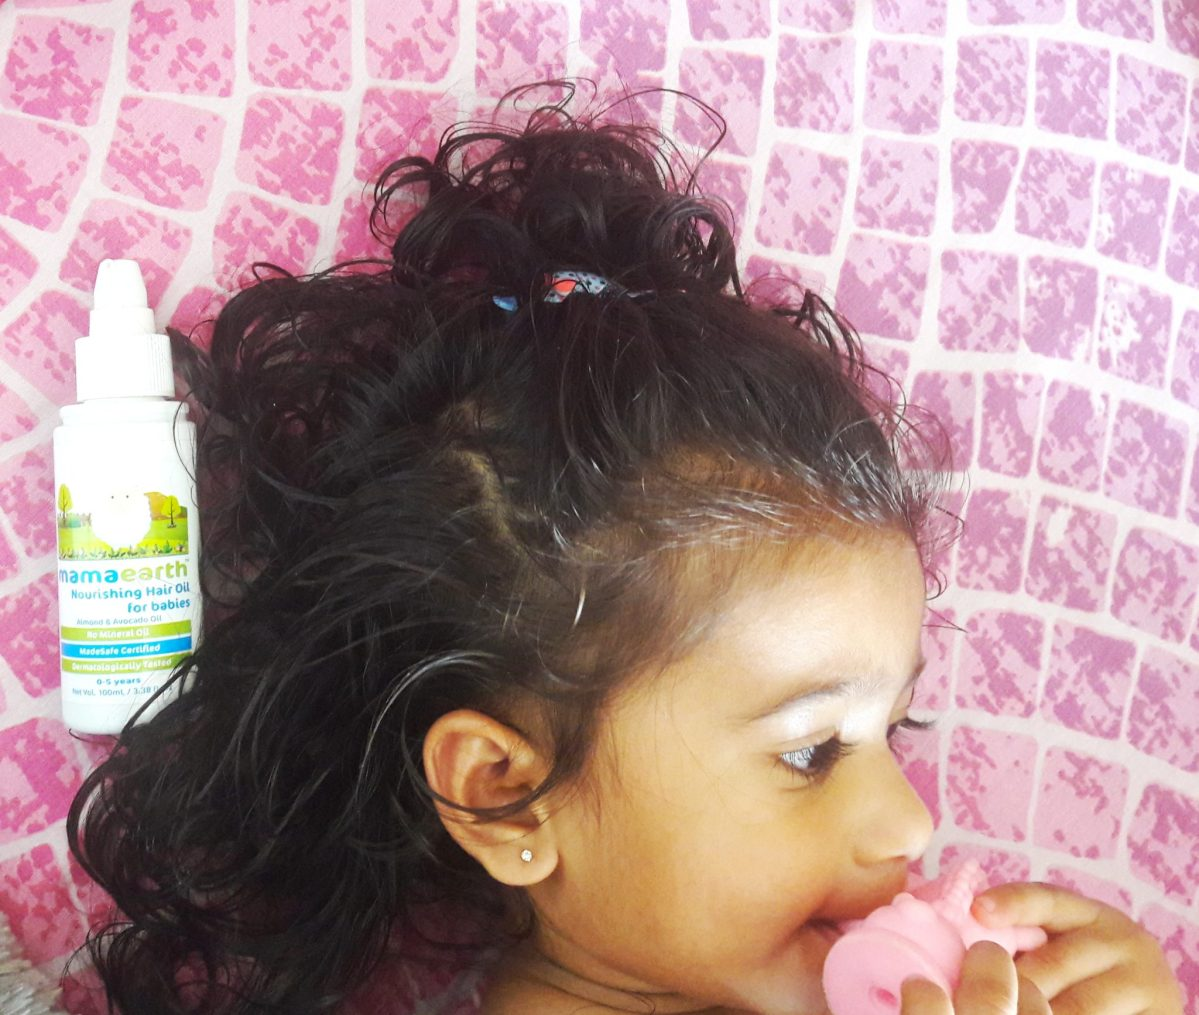 Healthy hair with mamaearth baby hair oil.